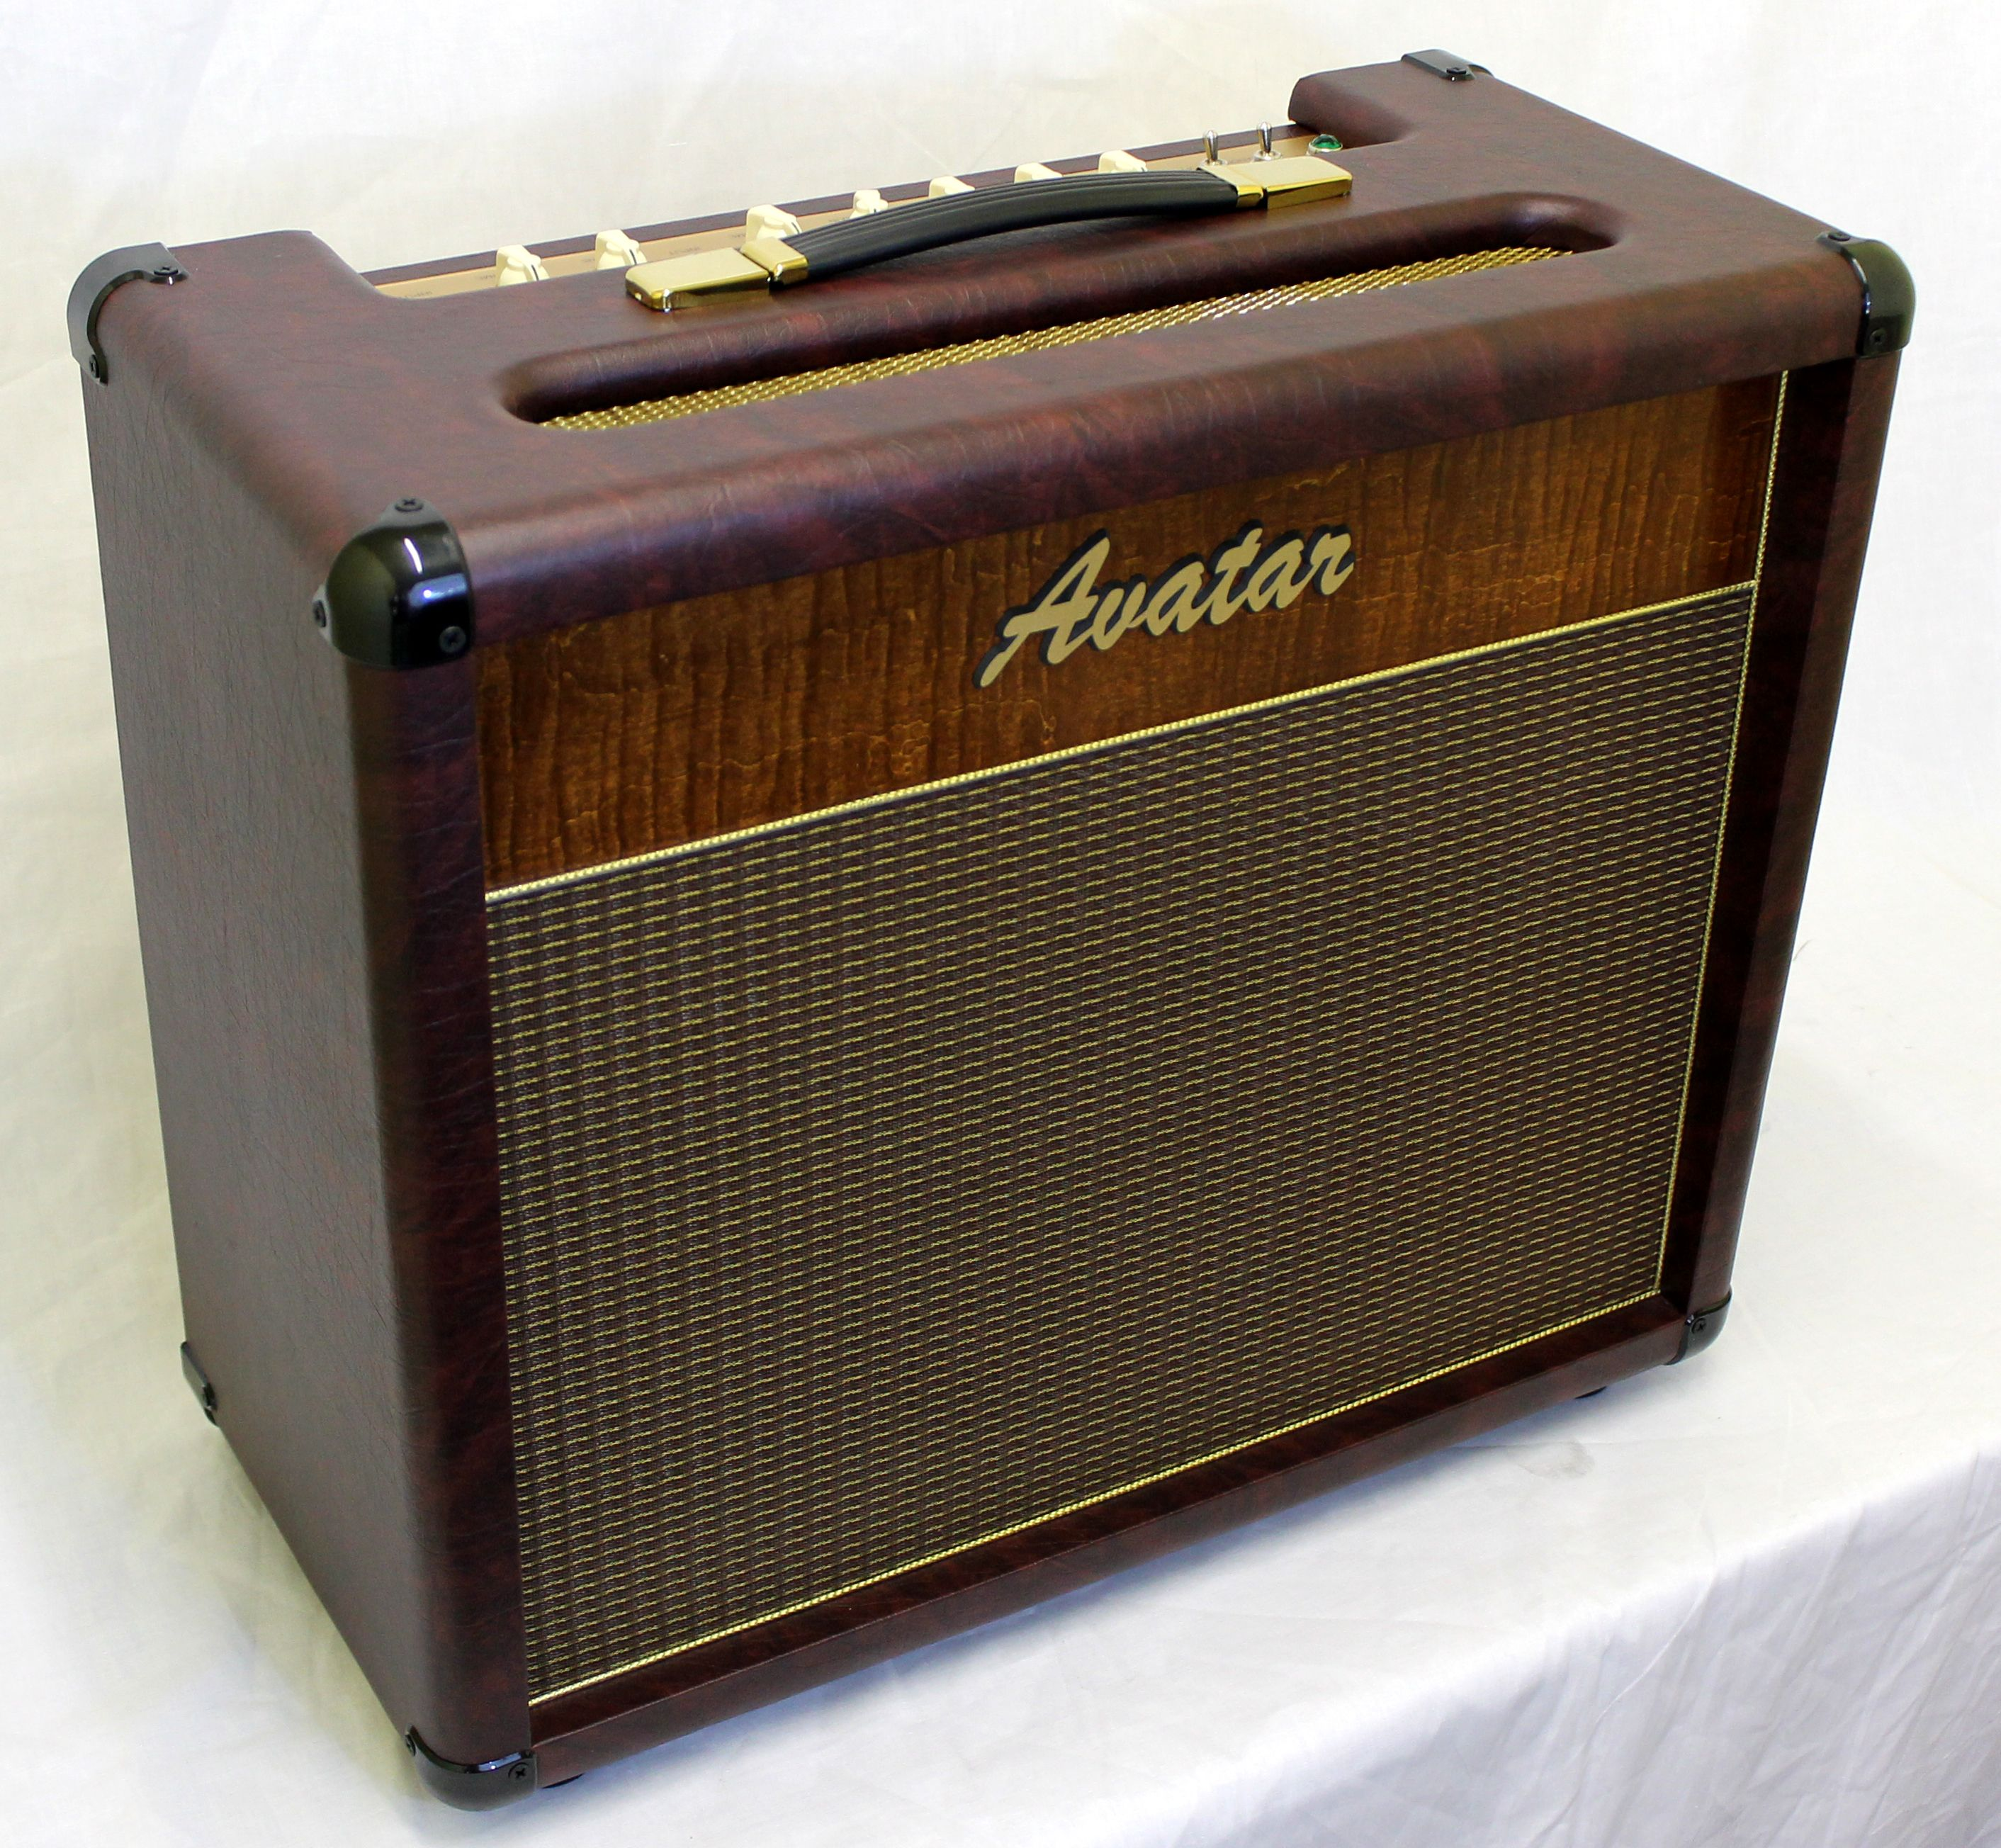 Charming G112 Vintage Combo | Avatar Speakers